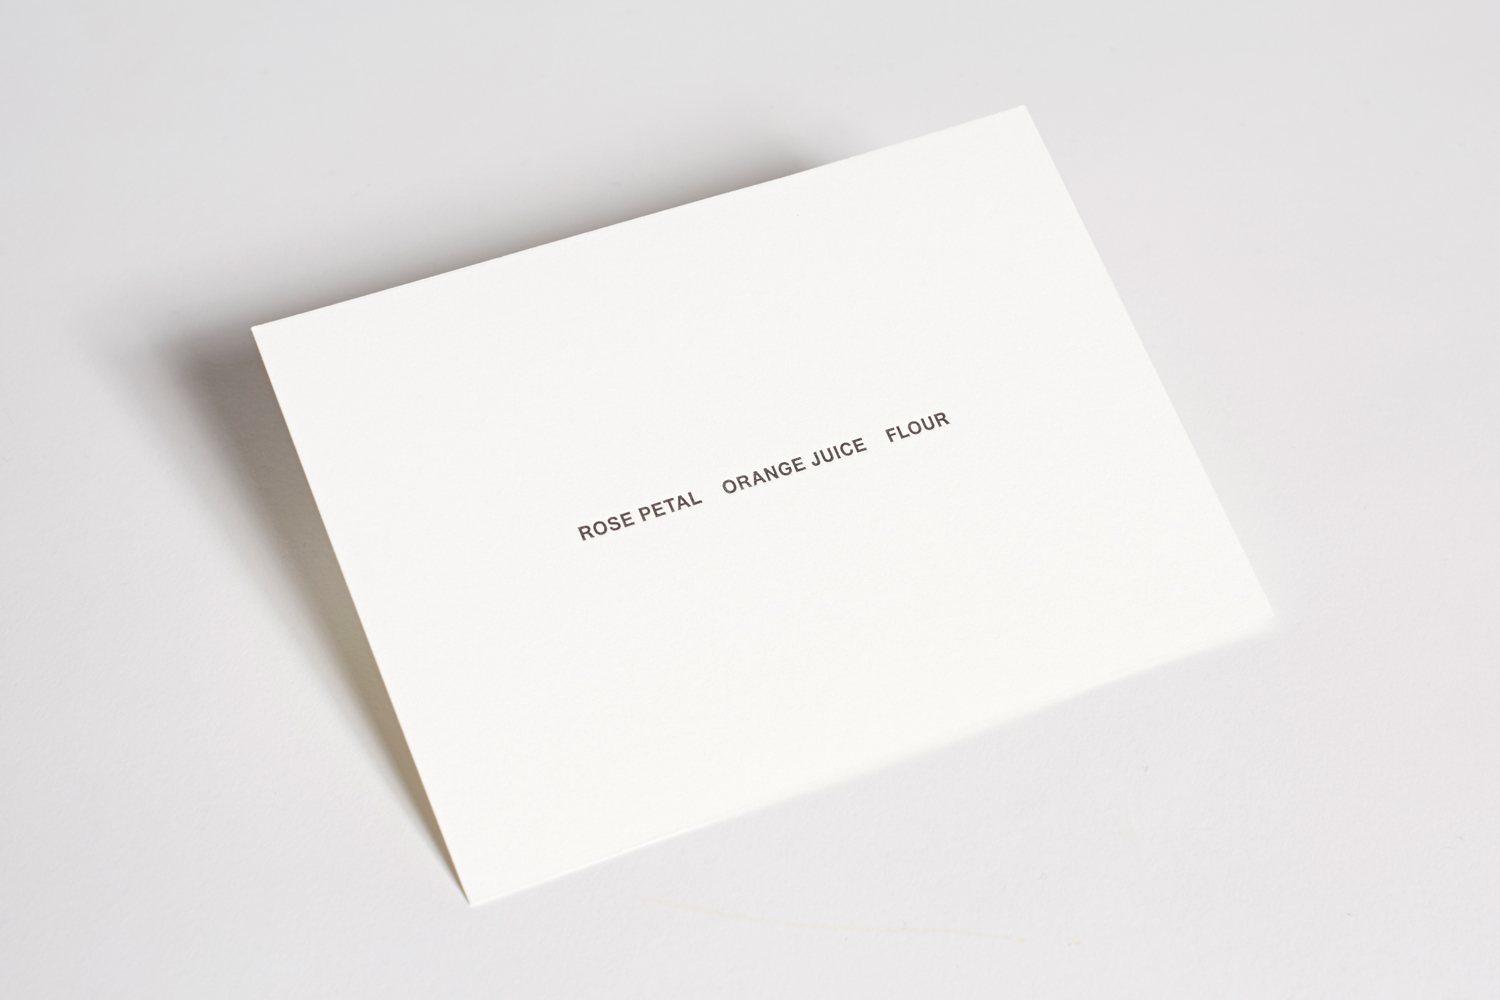 NewWorkStudio_Notecards_Rose.jpg